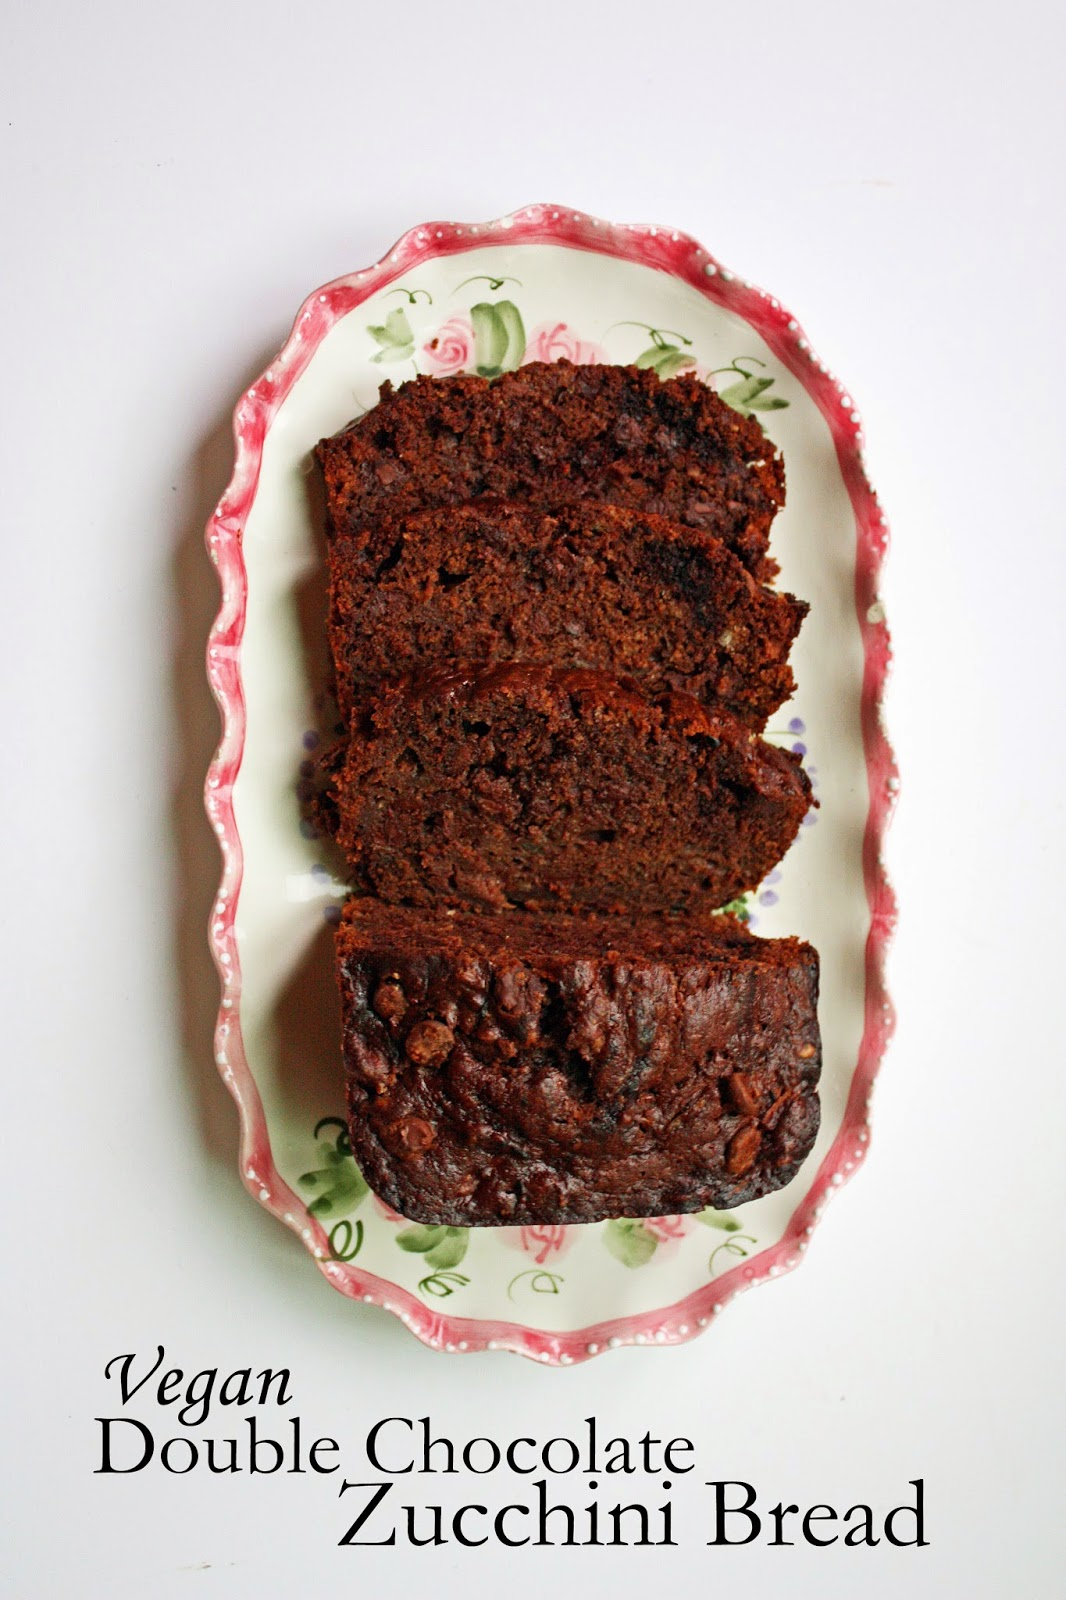 vegan double chocolate zucchini bread